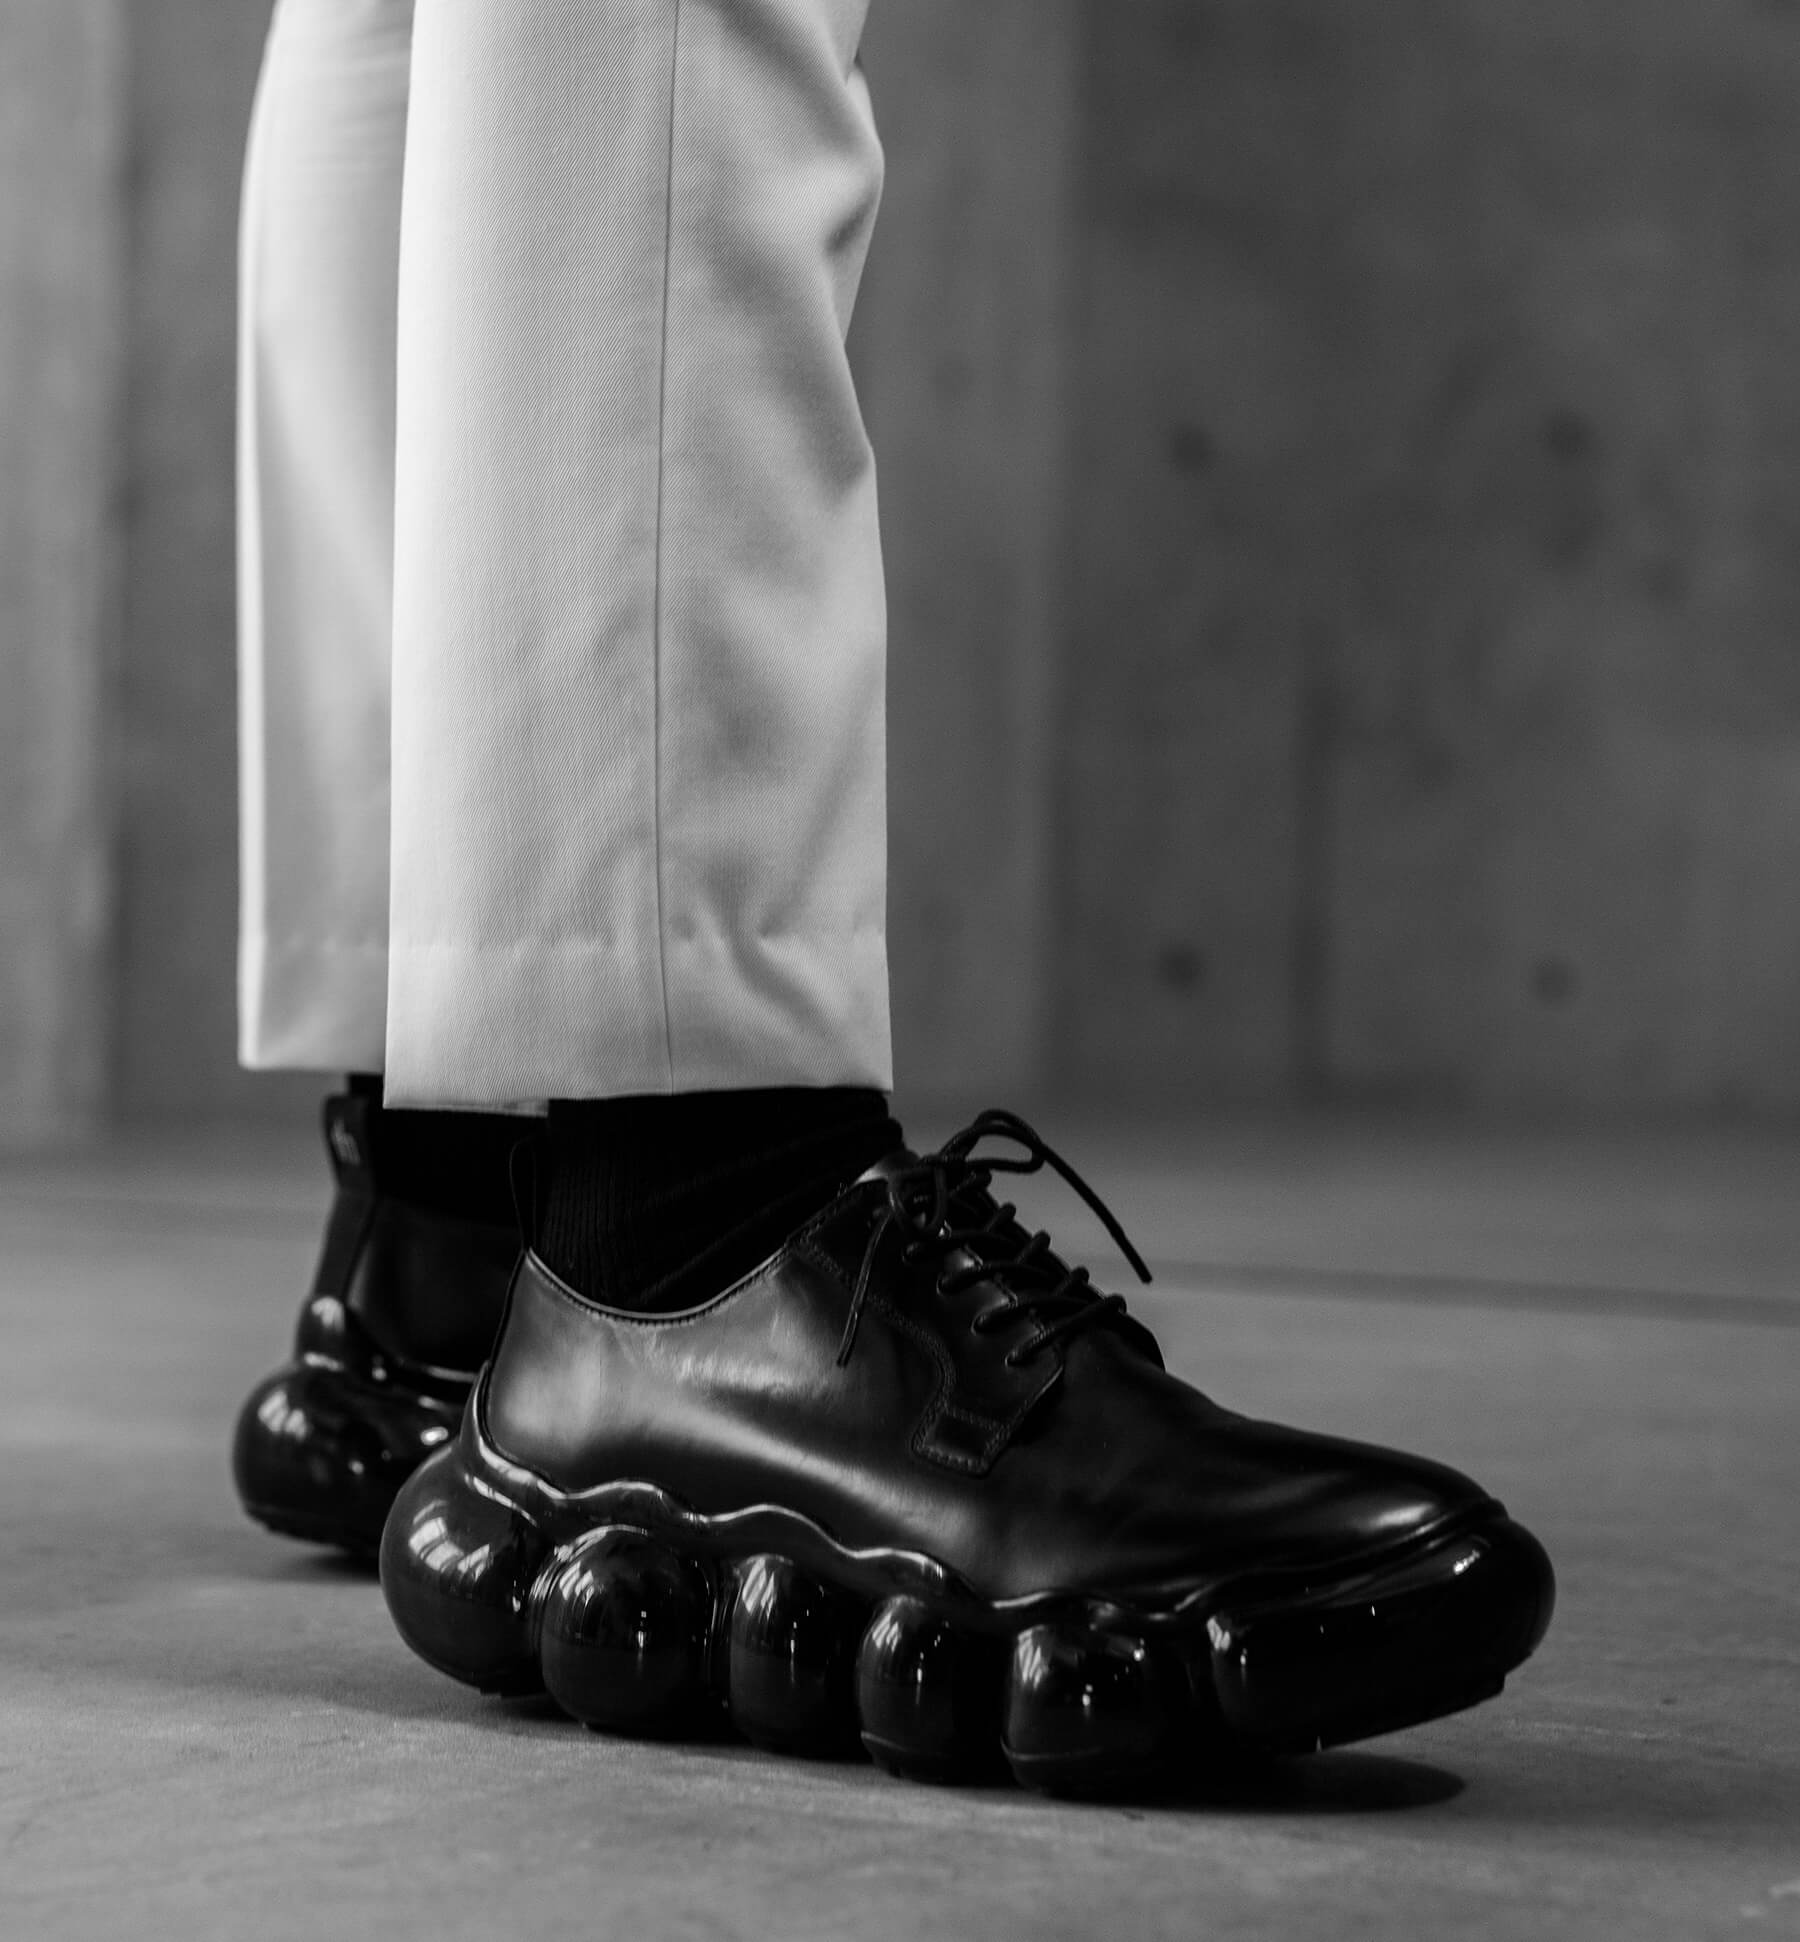 JEWELRY th Collaboration Leather shoes|grounds(レザーシューズ/革靴)